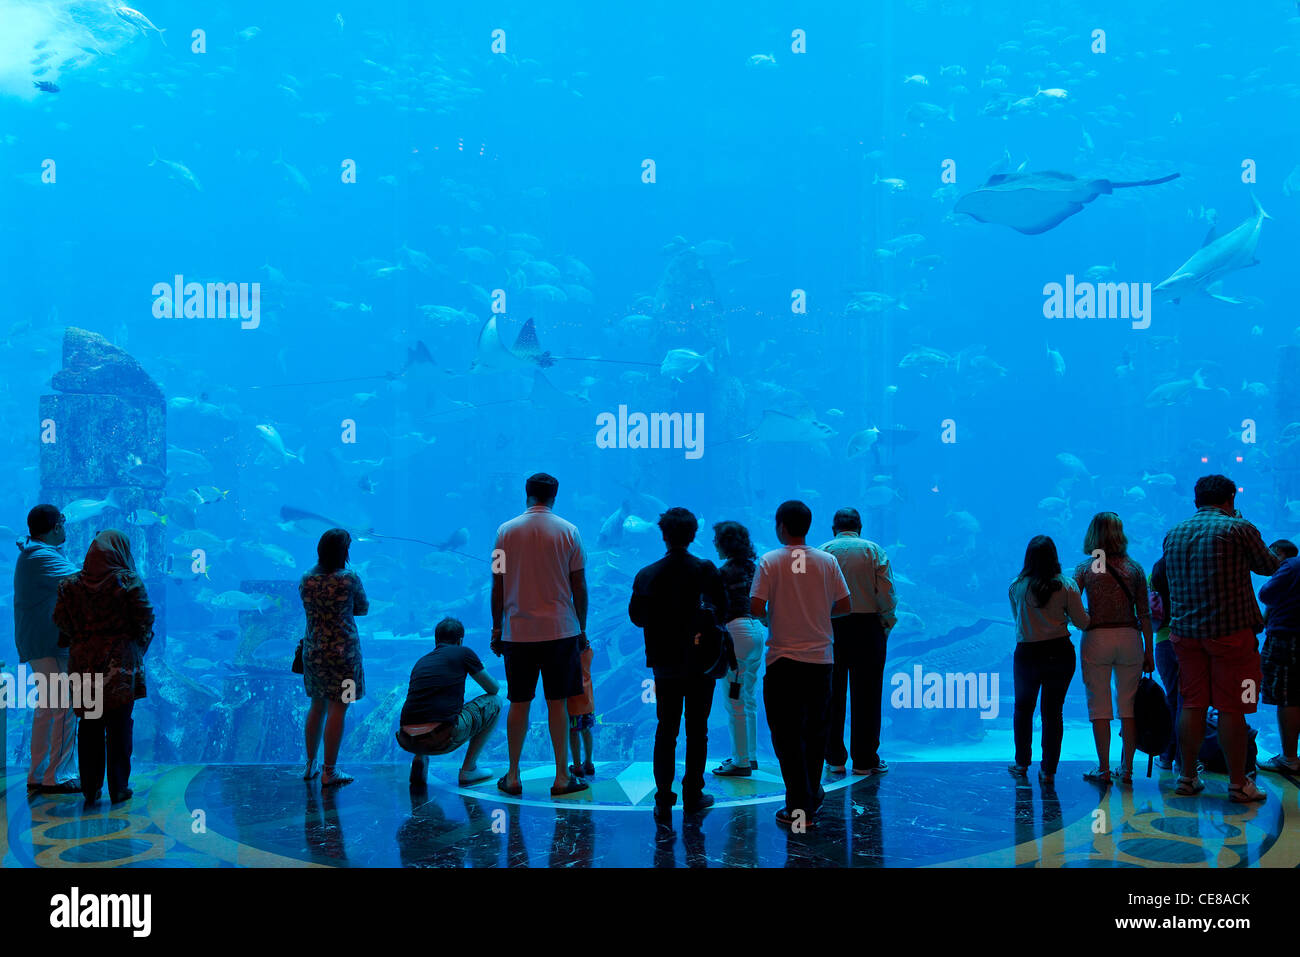 Dubai, Aquarium in the Atlantis The Palm Resort in Dubai - Stock Image